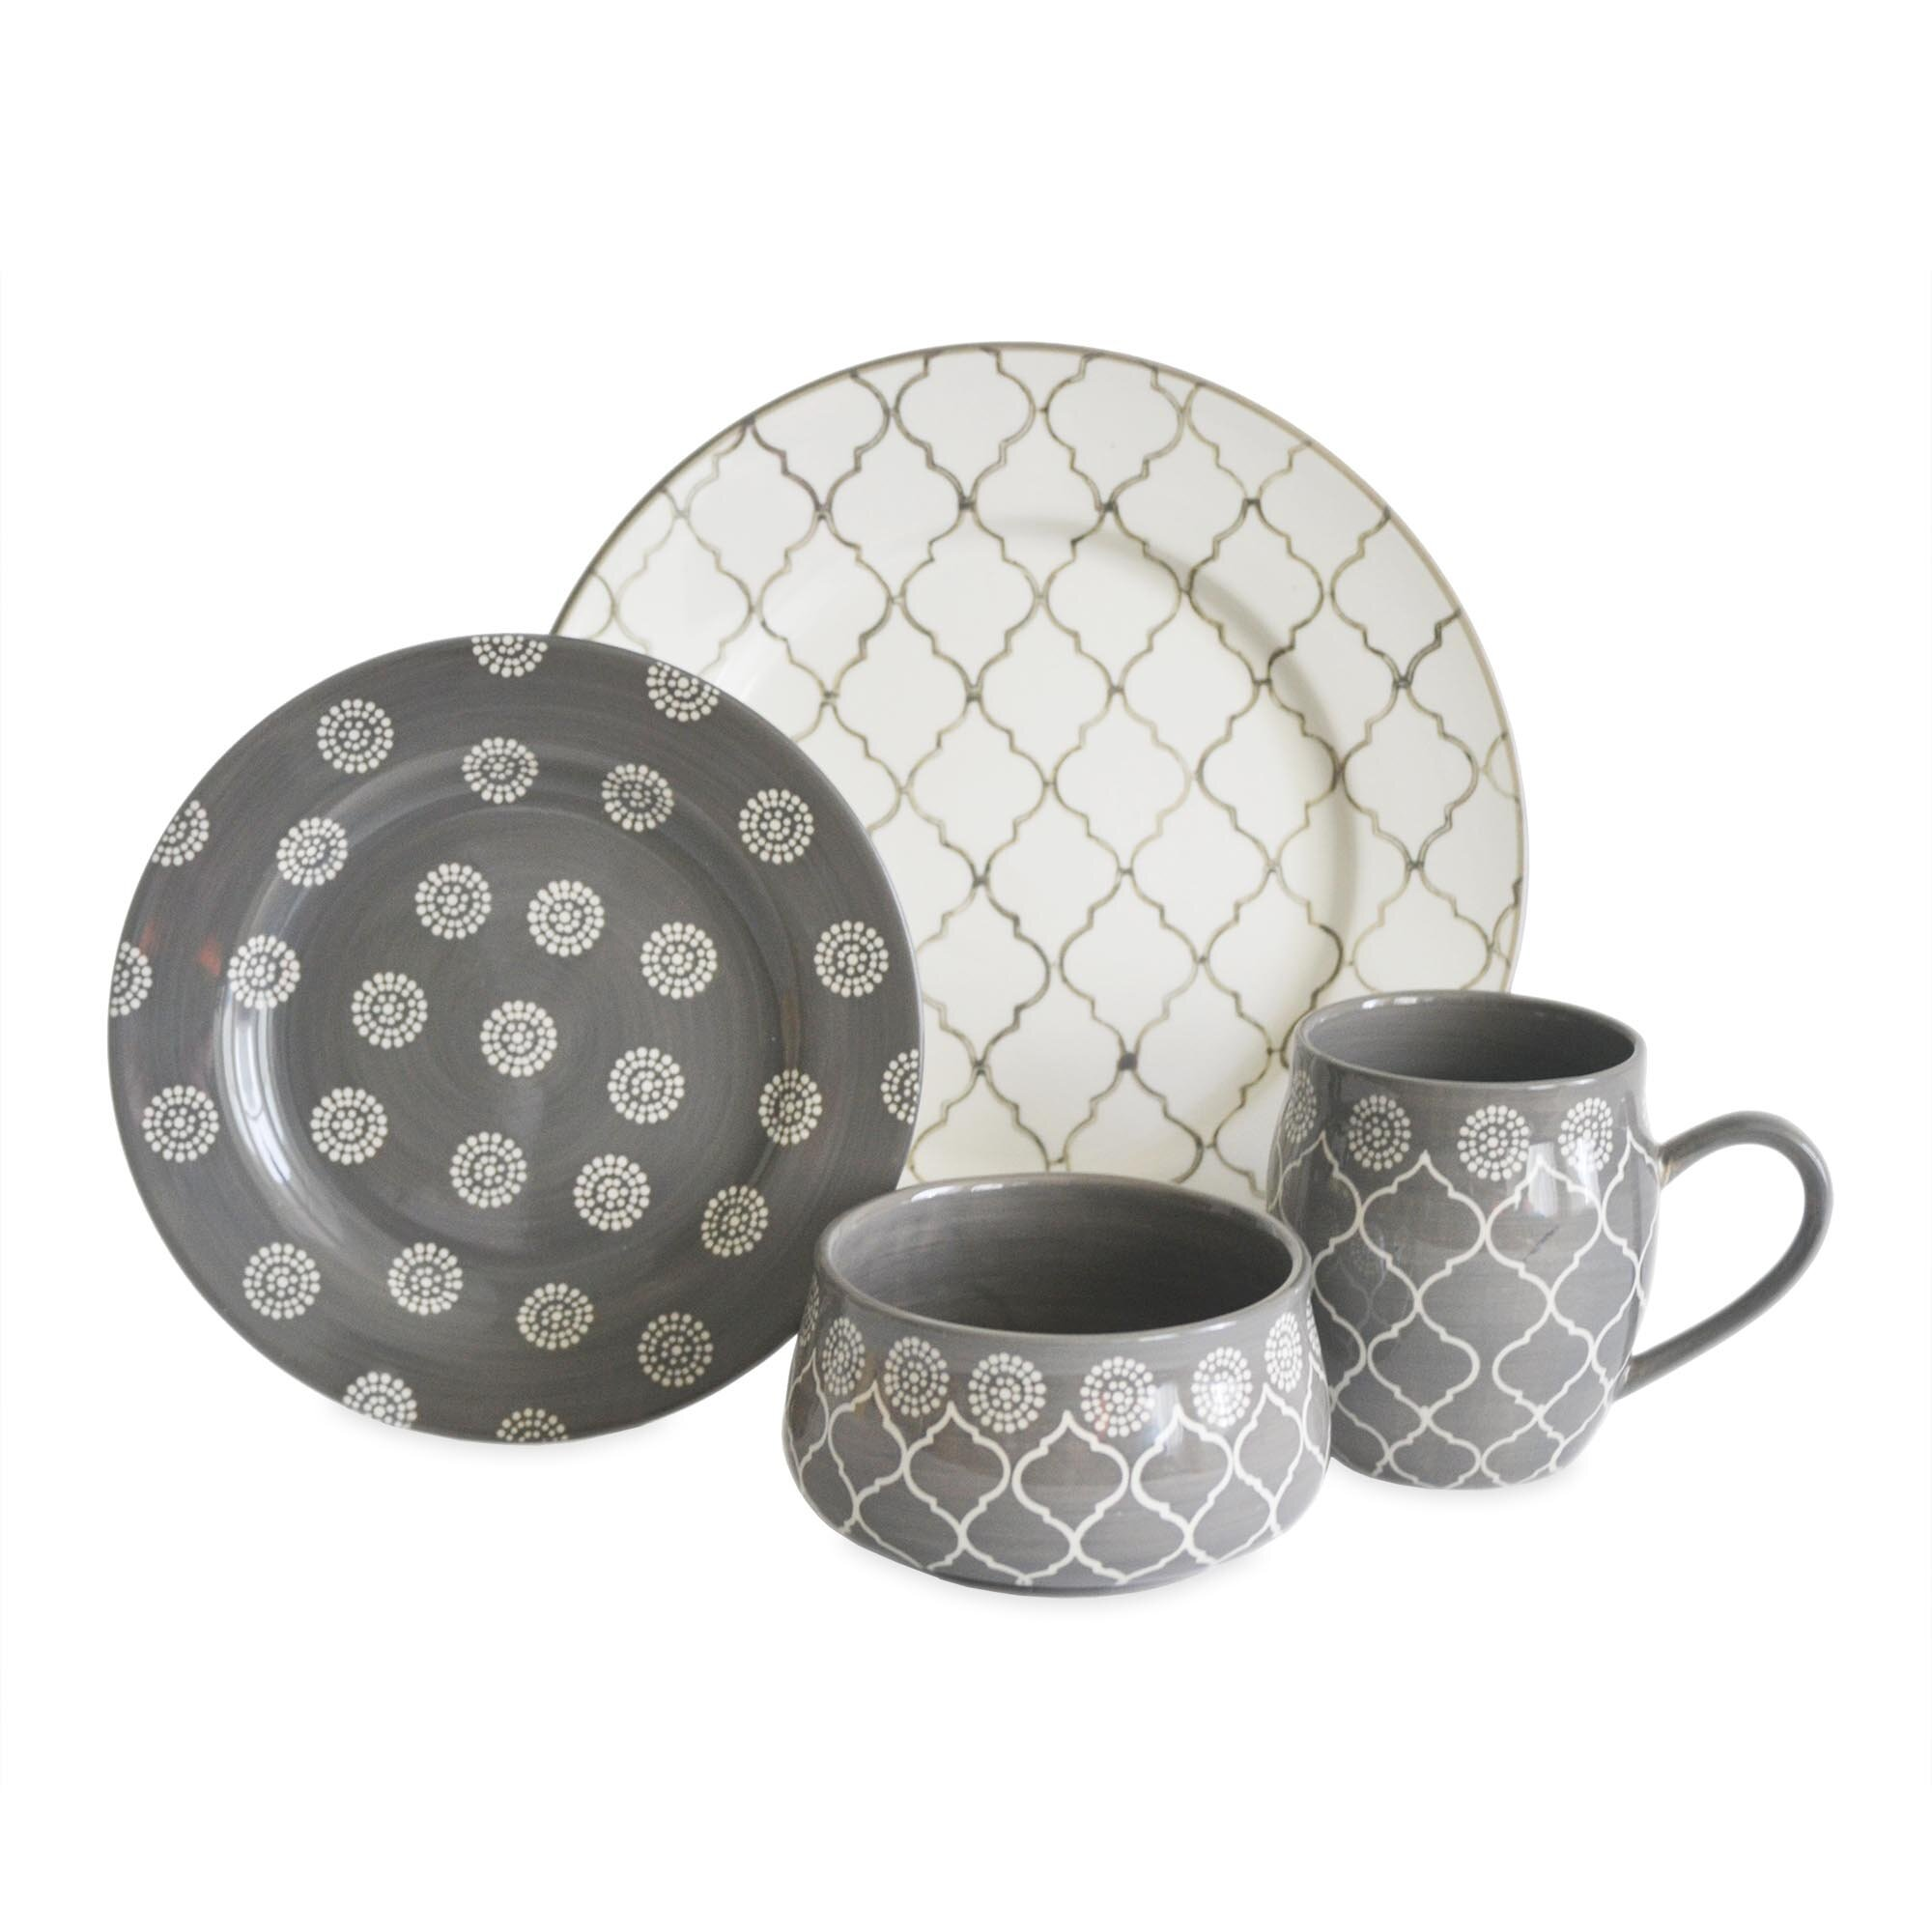 sc 1 st  Wayfair & Baum Moroccan 16 Piece Dinnerware Set Service for 4 u0026 Reviews | Wayfair